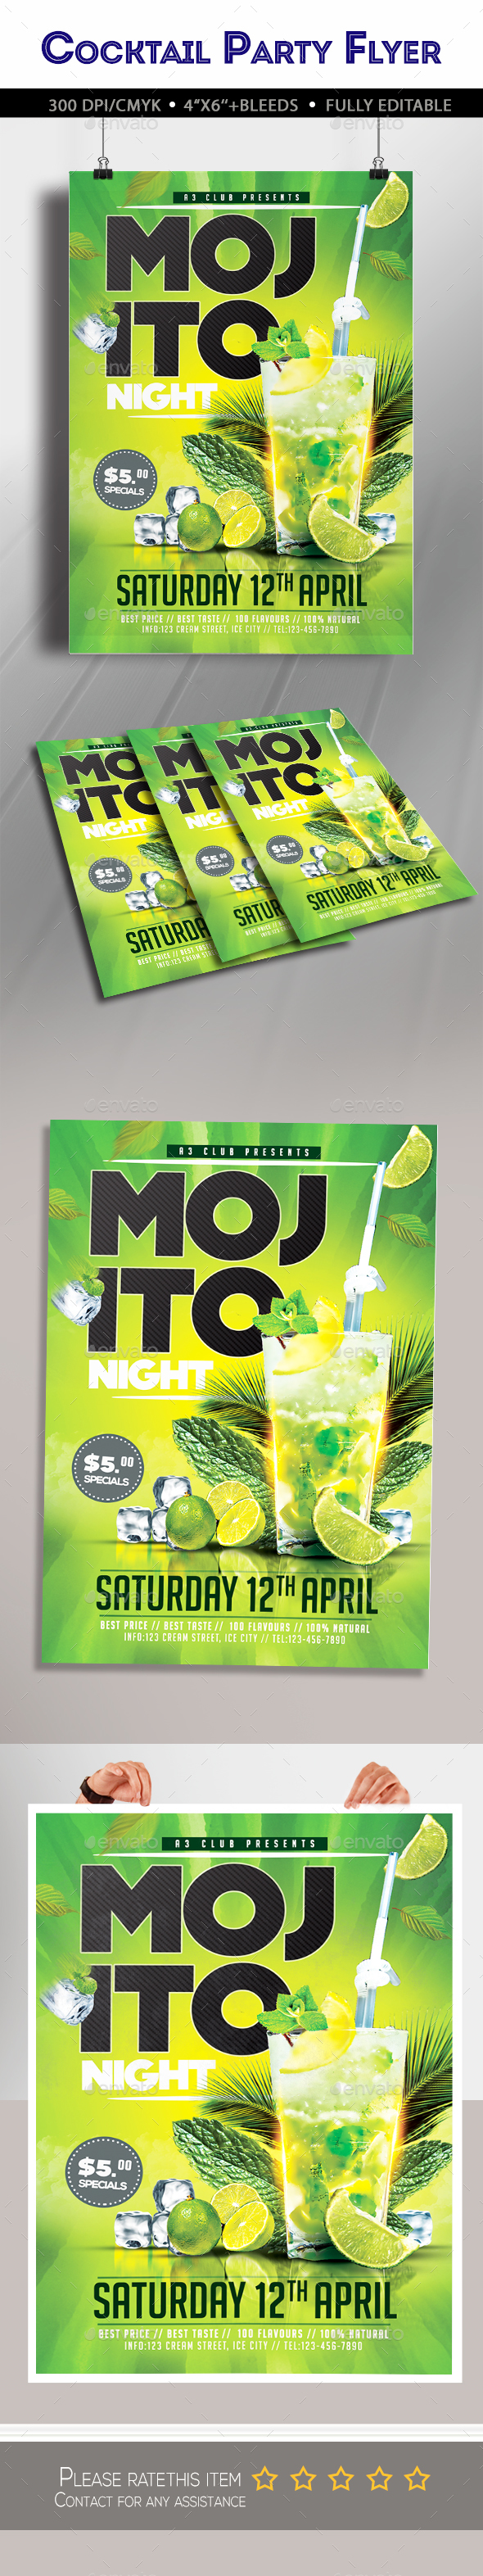 Mojito Night Party Flyer - Clubs & Parties Events